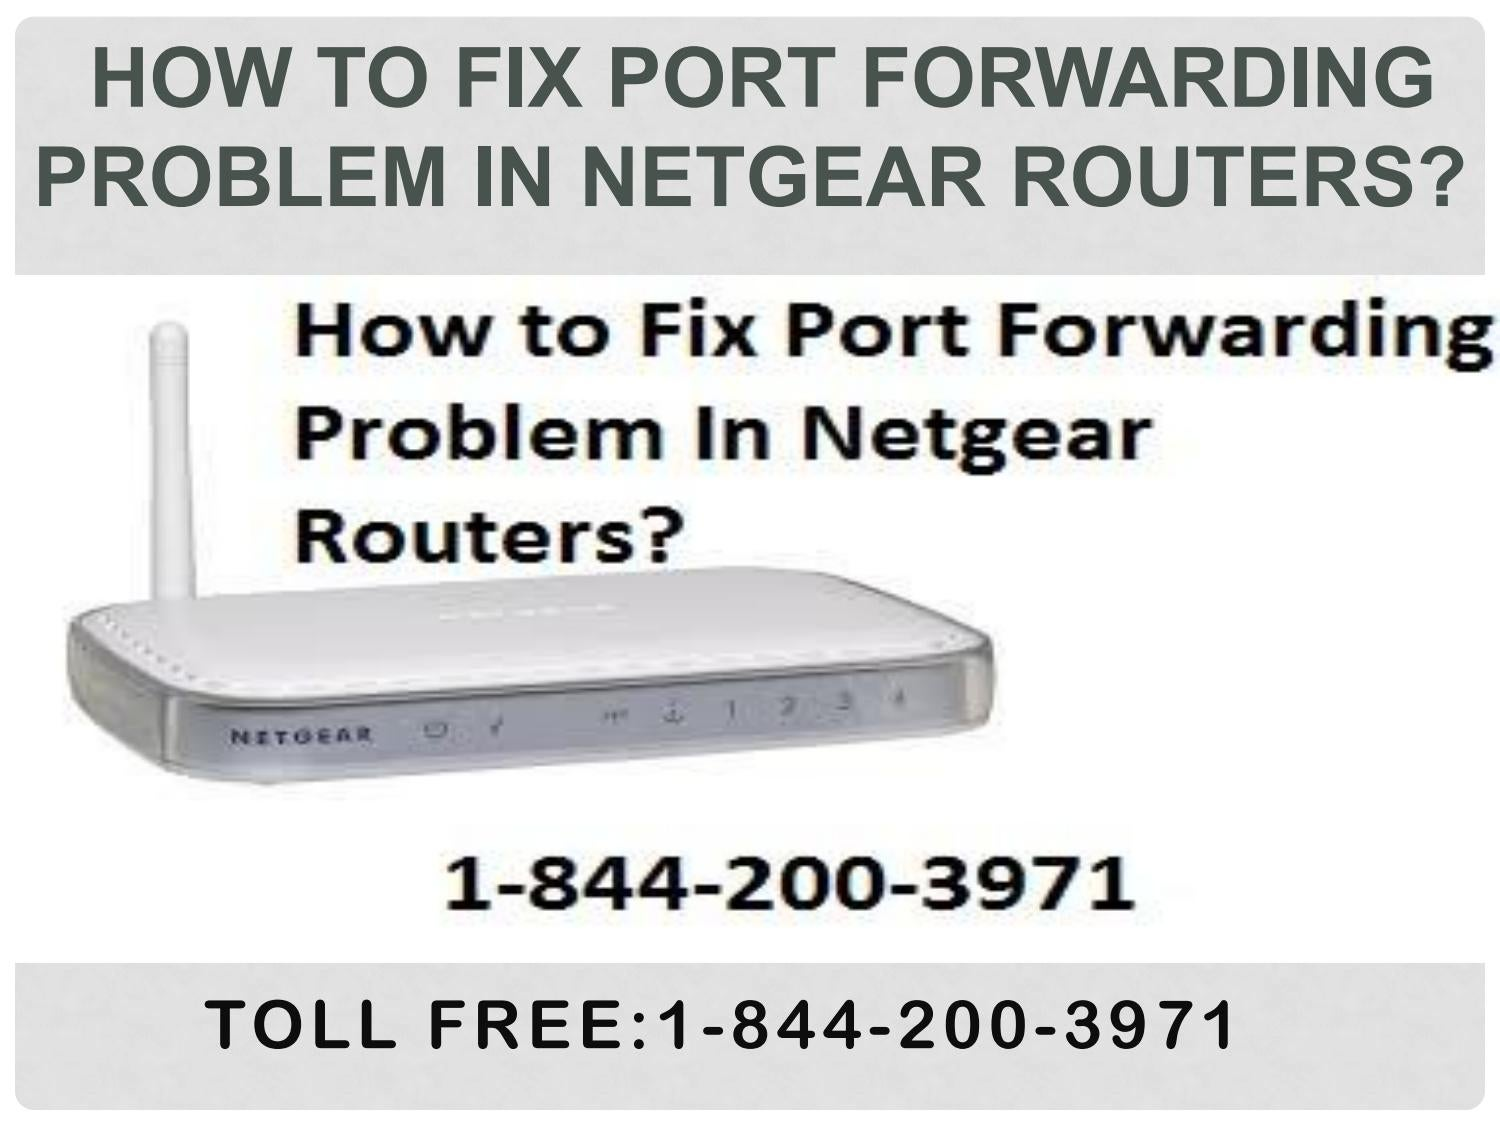 18442003971 how to fix port forwarding problem in netgear